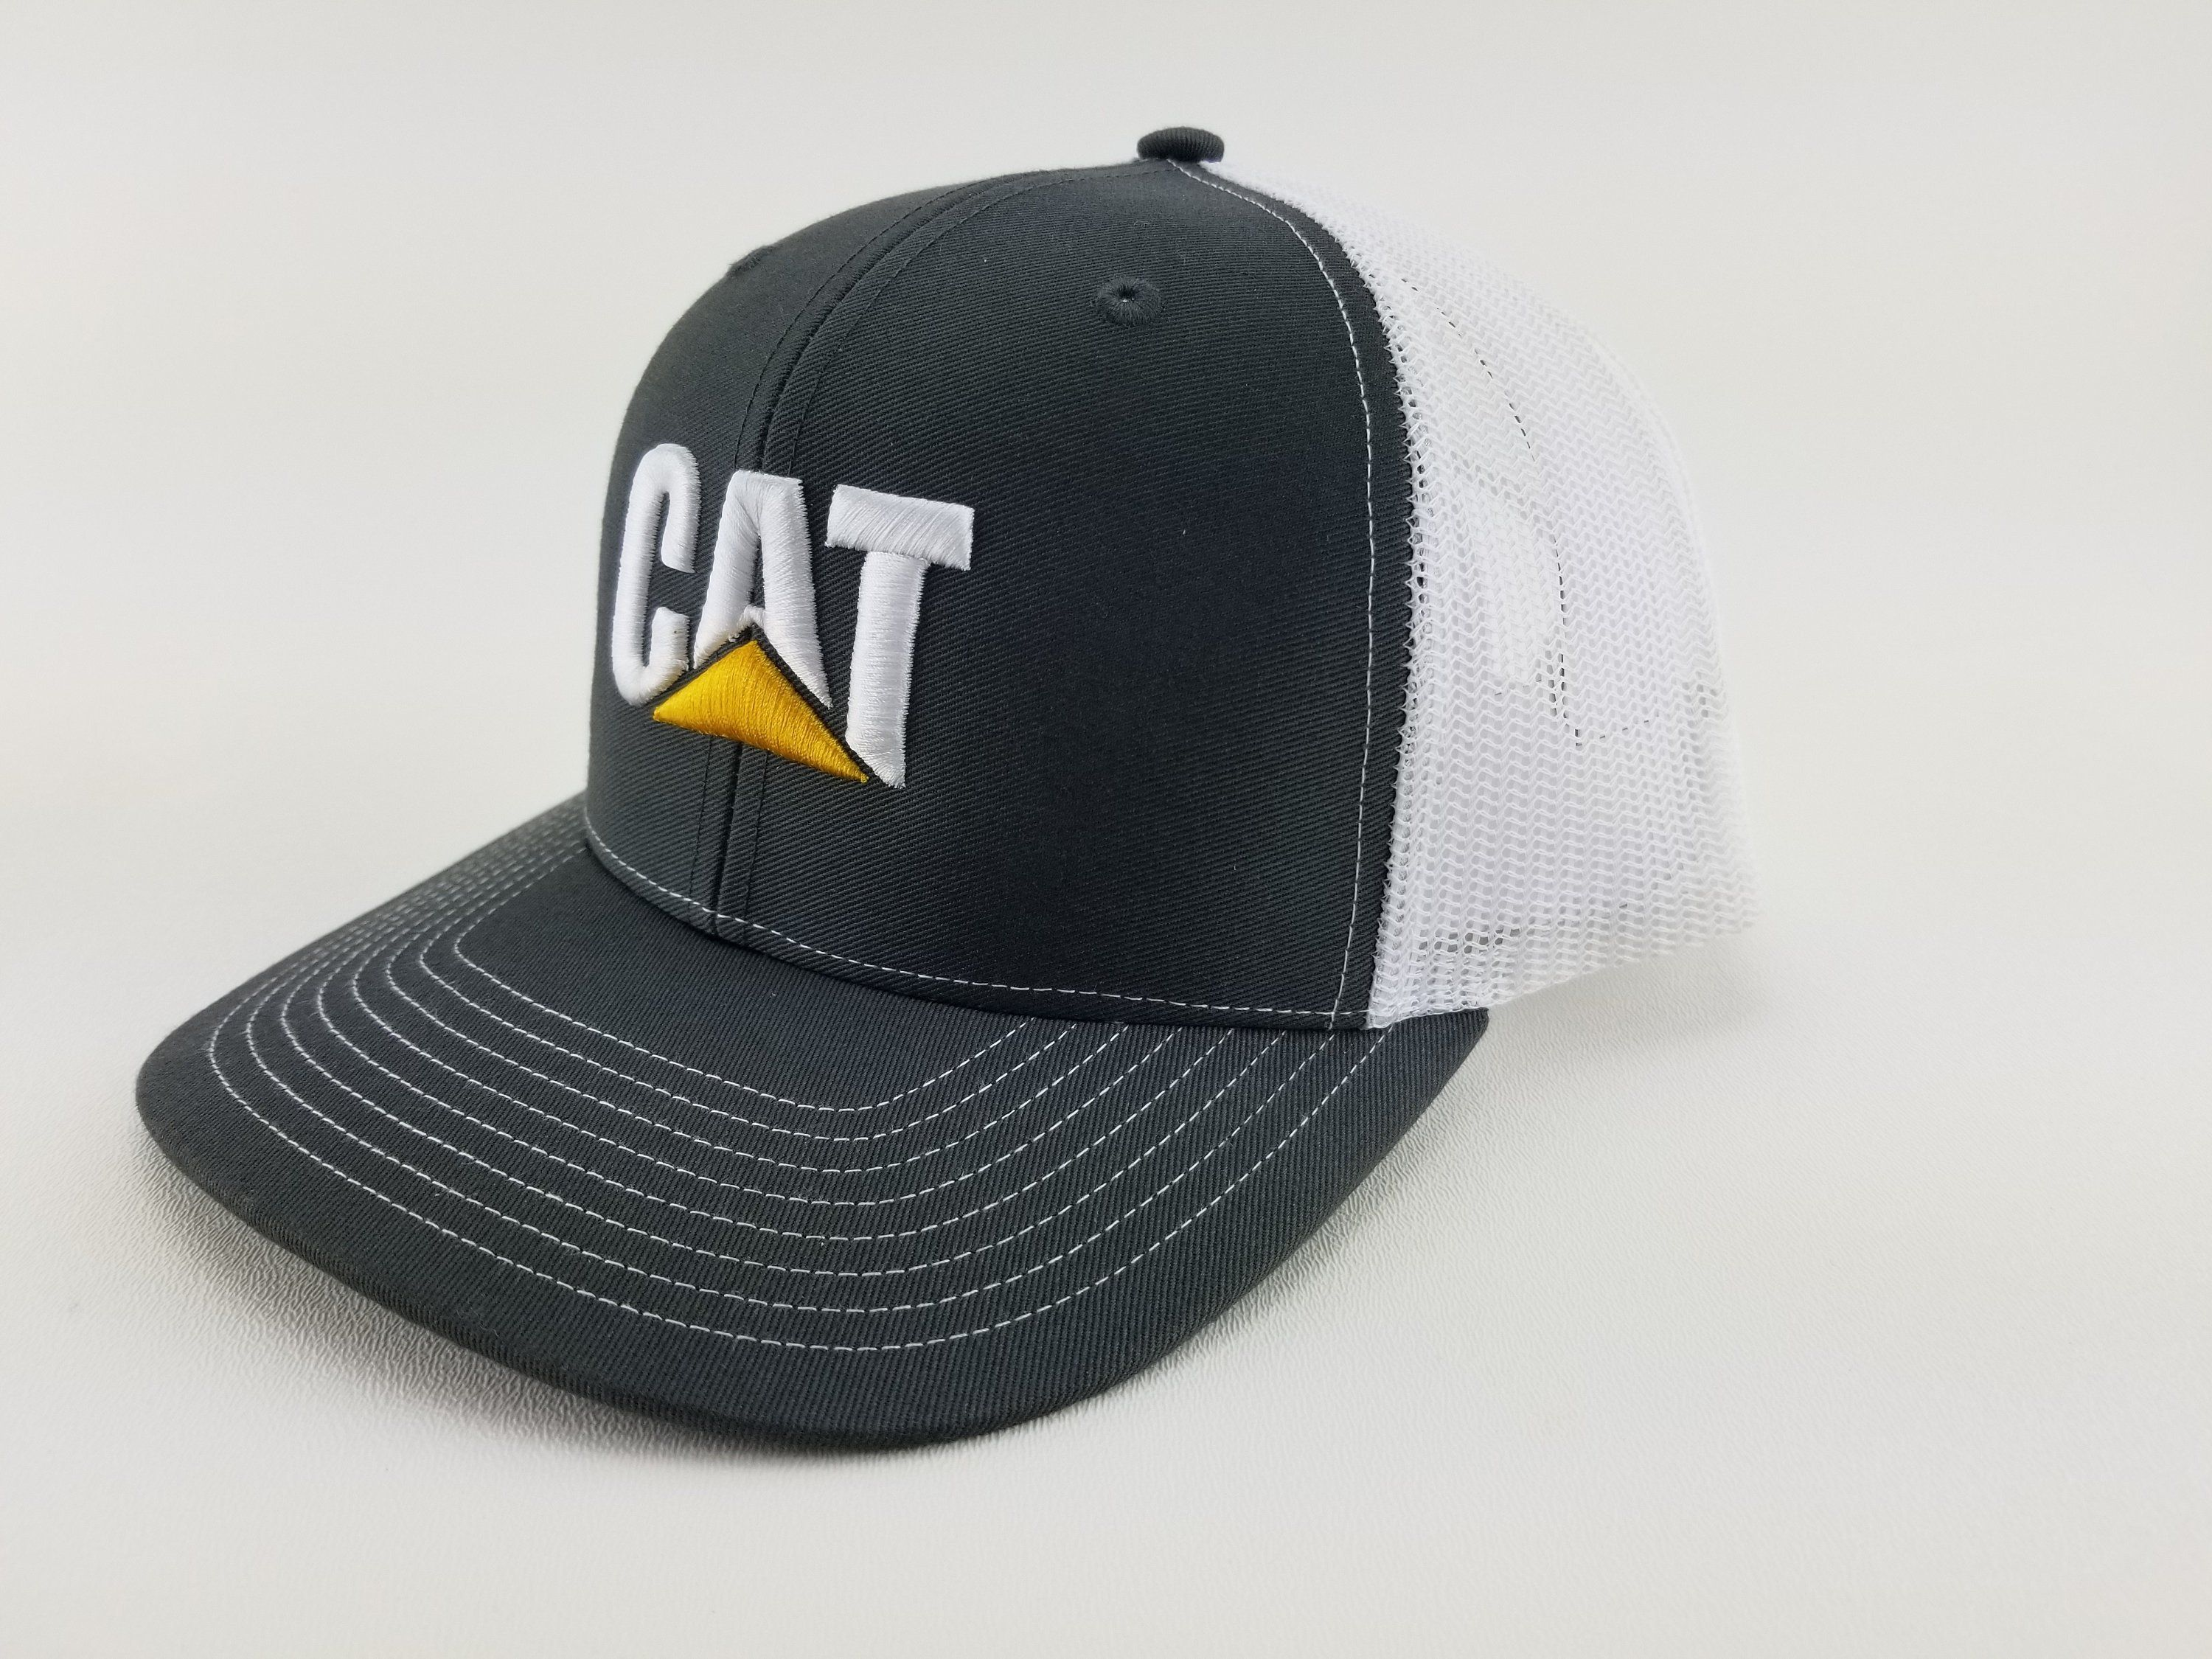 ad3565c4bc48a CAT trucker hat, Richardson, diesel, Snapback, cat hat, caterpillar ...